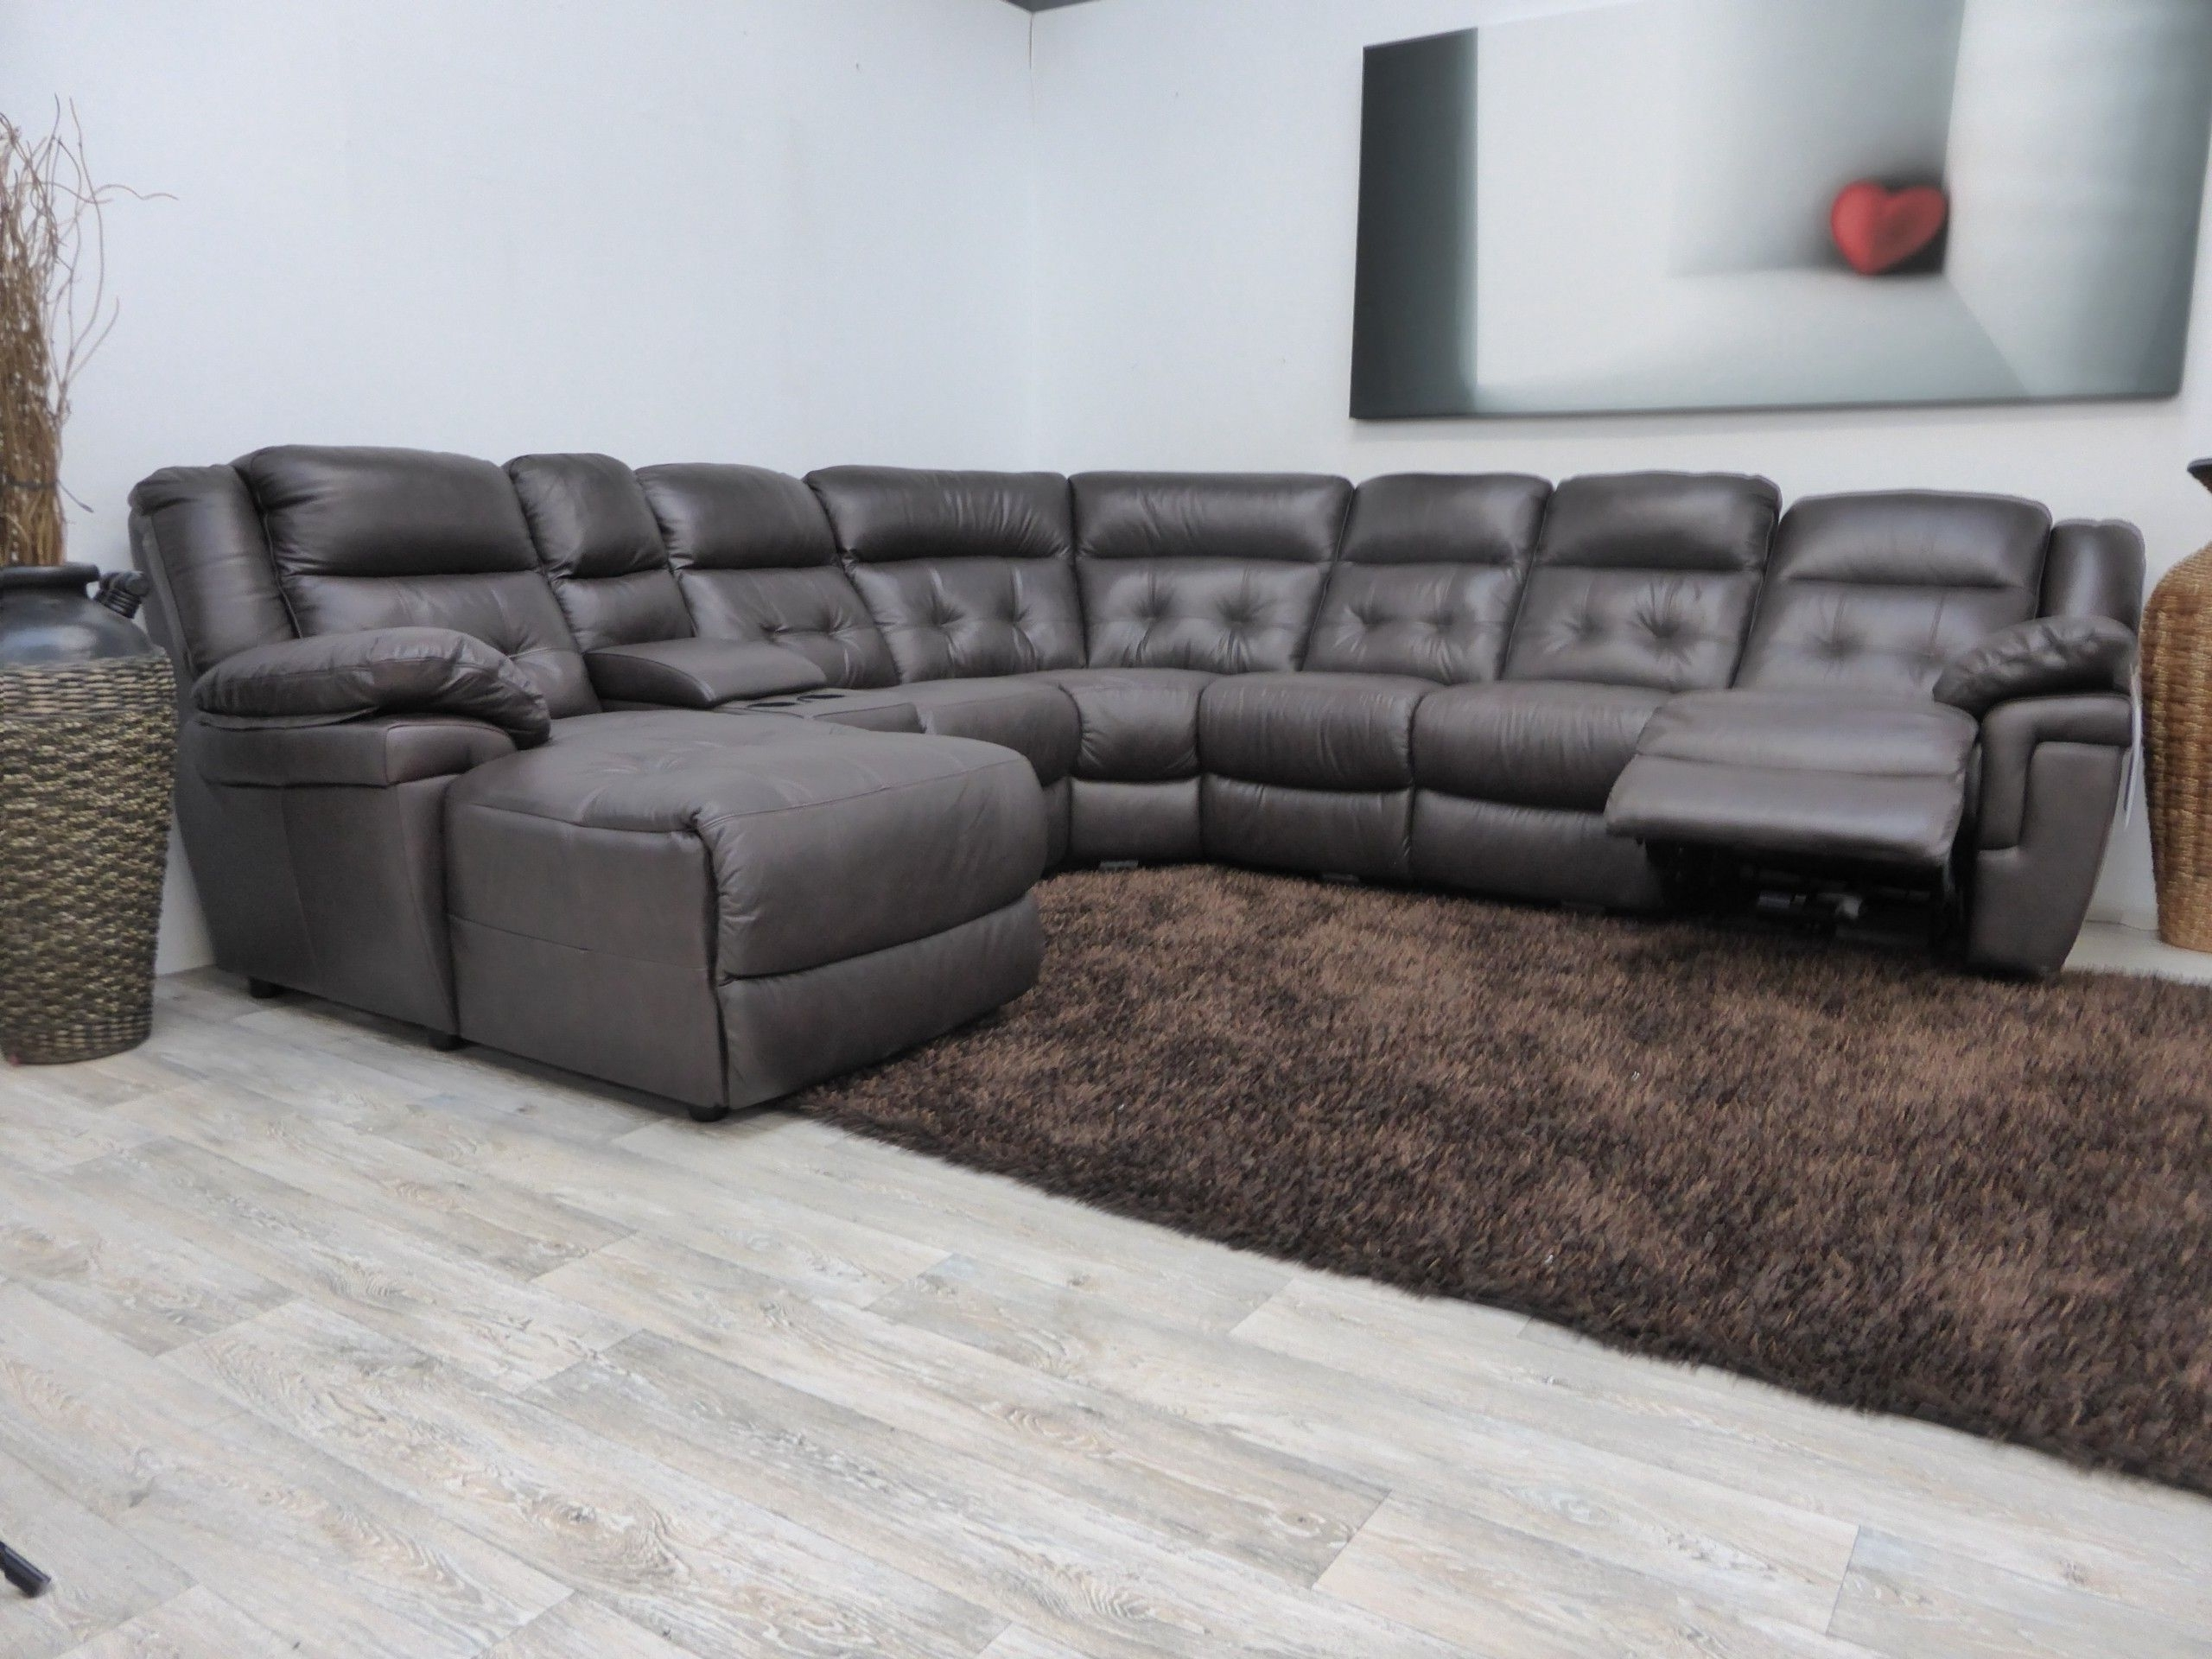 Well Liked L Shaped Sofa Design With Black Upholstery Faux Leather Sofa Regarding Sectional Sofas At Lazy Boy (View 7 of 20)